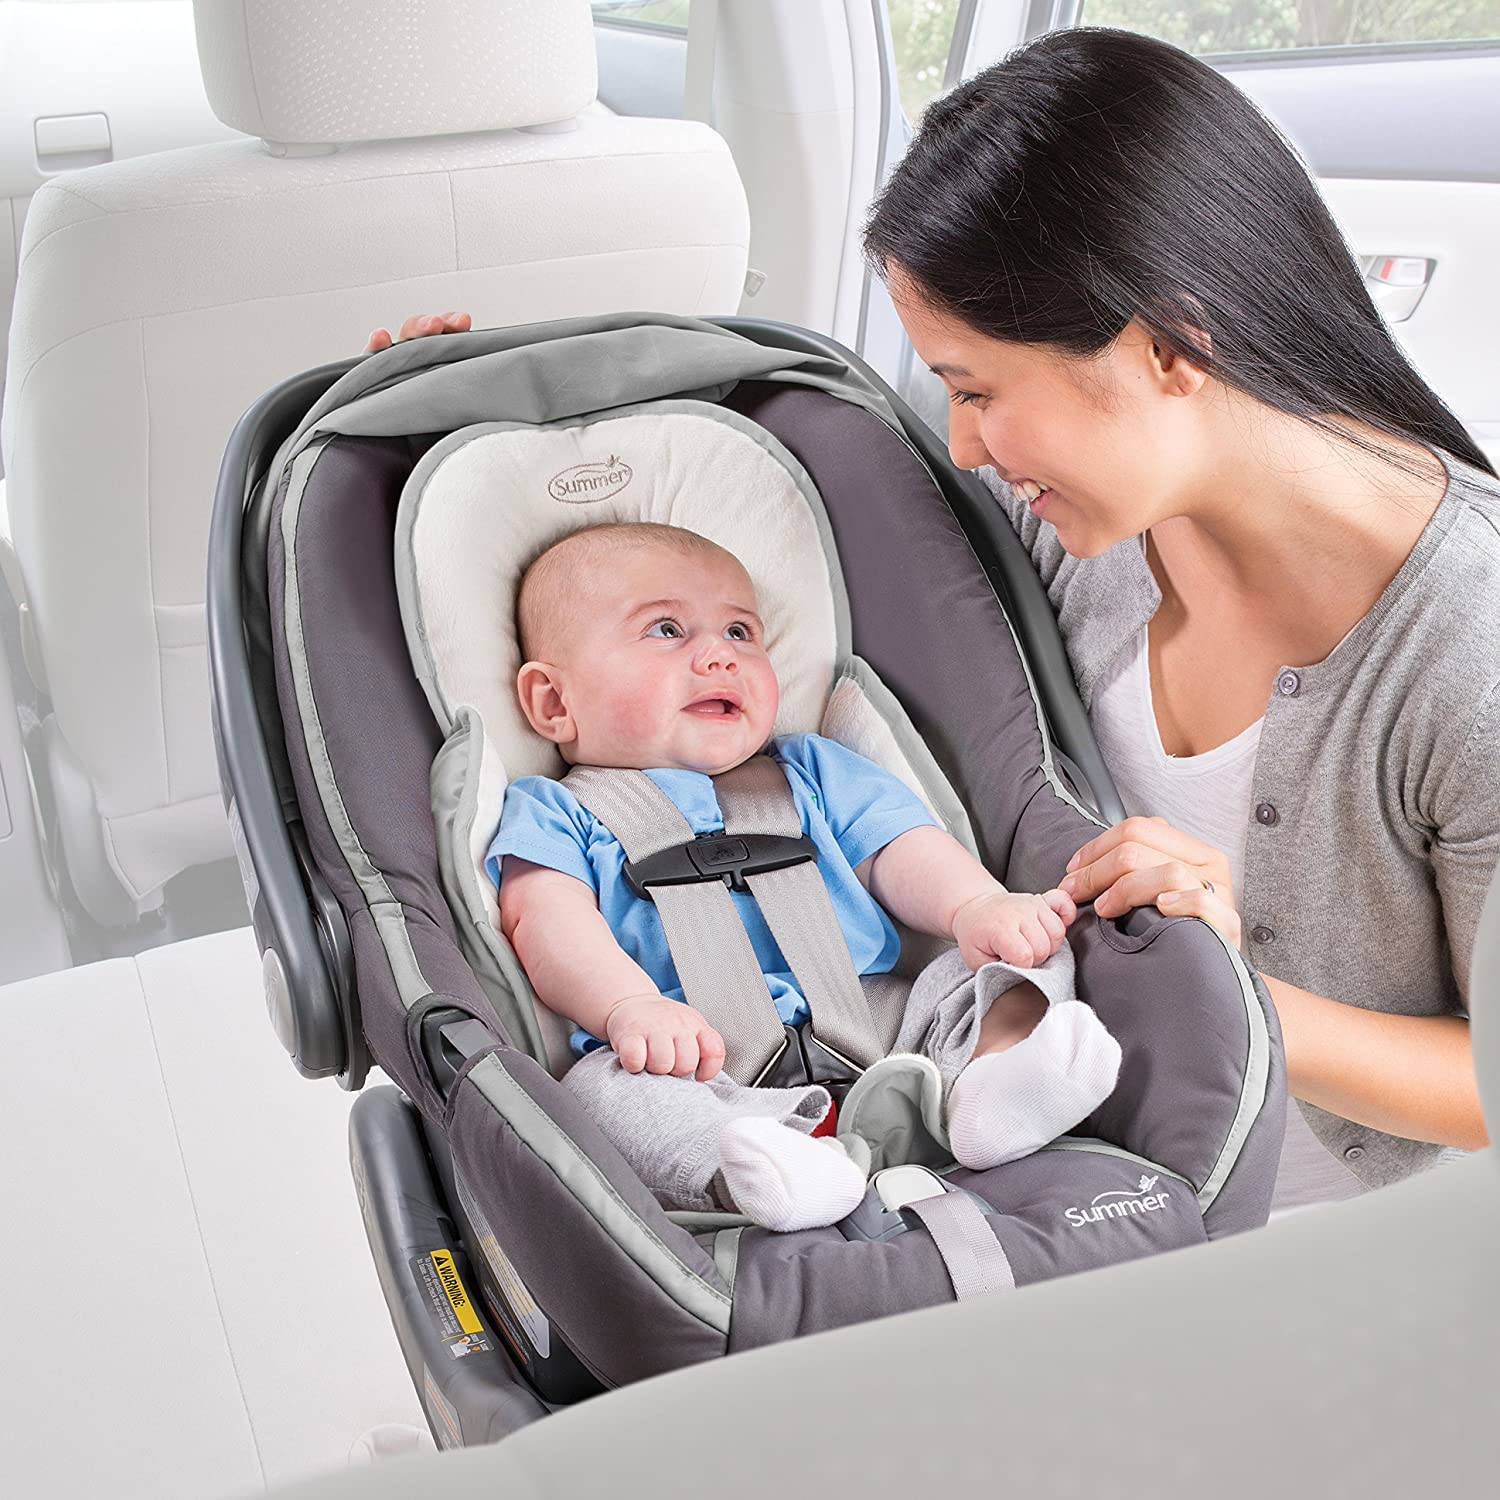 Amazon.com: Summer Infant Snuzzler Infant Support for Car Seats and